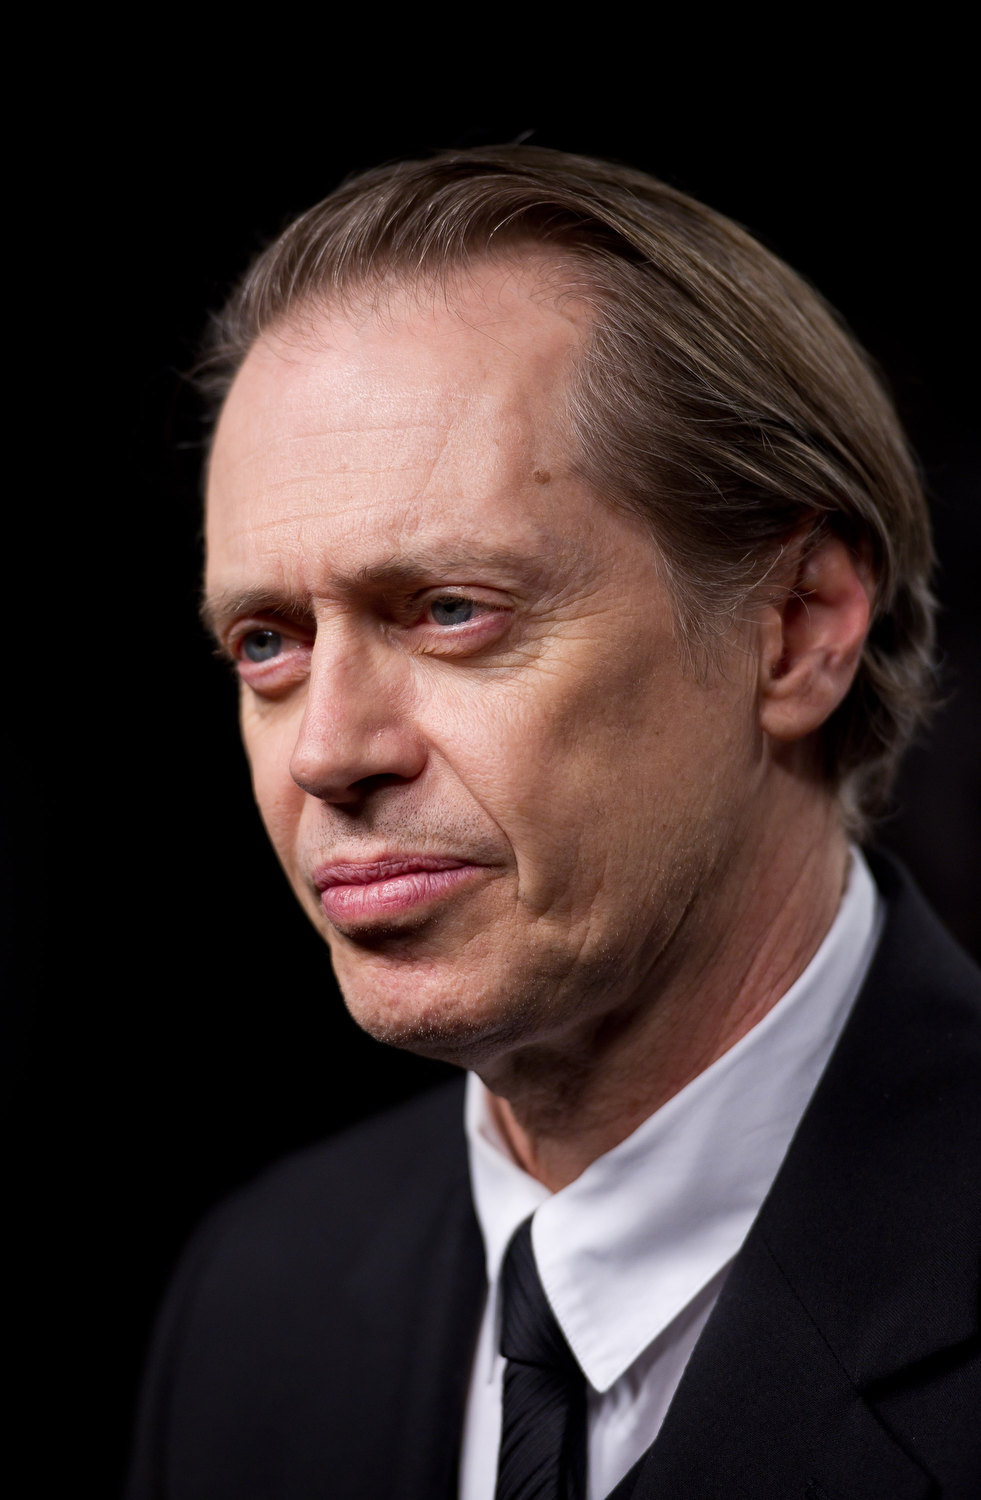 . The 2013 Golden Globe Awards Nominations were announced on December 13, 2012 in Los Angeles, California.  Tina Fey and Amy Poehler will co-host the Golden Globes awards on January 13, 2013 with actress Jodie Foster receiving the Cecil B. DeMille Award. LONDON, ENGLAND - FEBRUARY 04:  Steve Buscemi attends the launch of the Sky Atlantic channel at the Sky pop-up venue on February 4, 2011 in London, England.  (Photo by Ian Gavan/Getty Images)